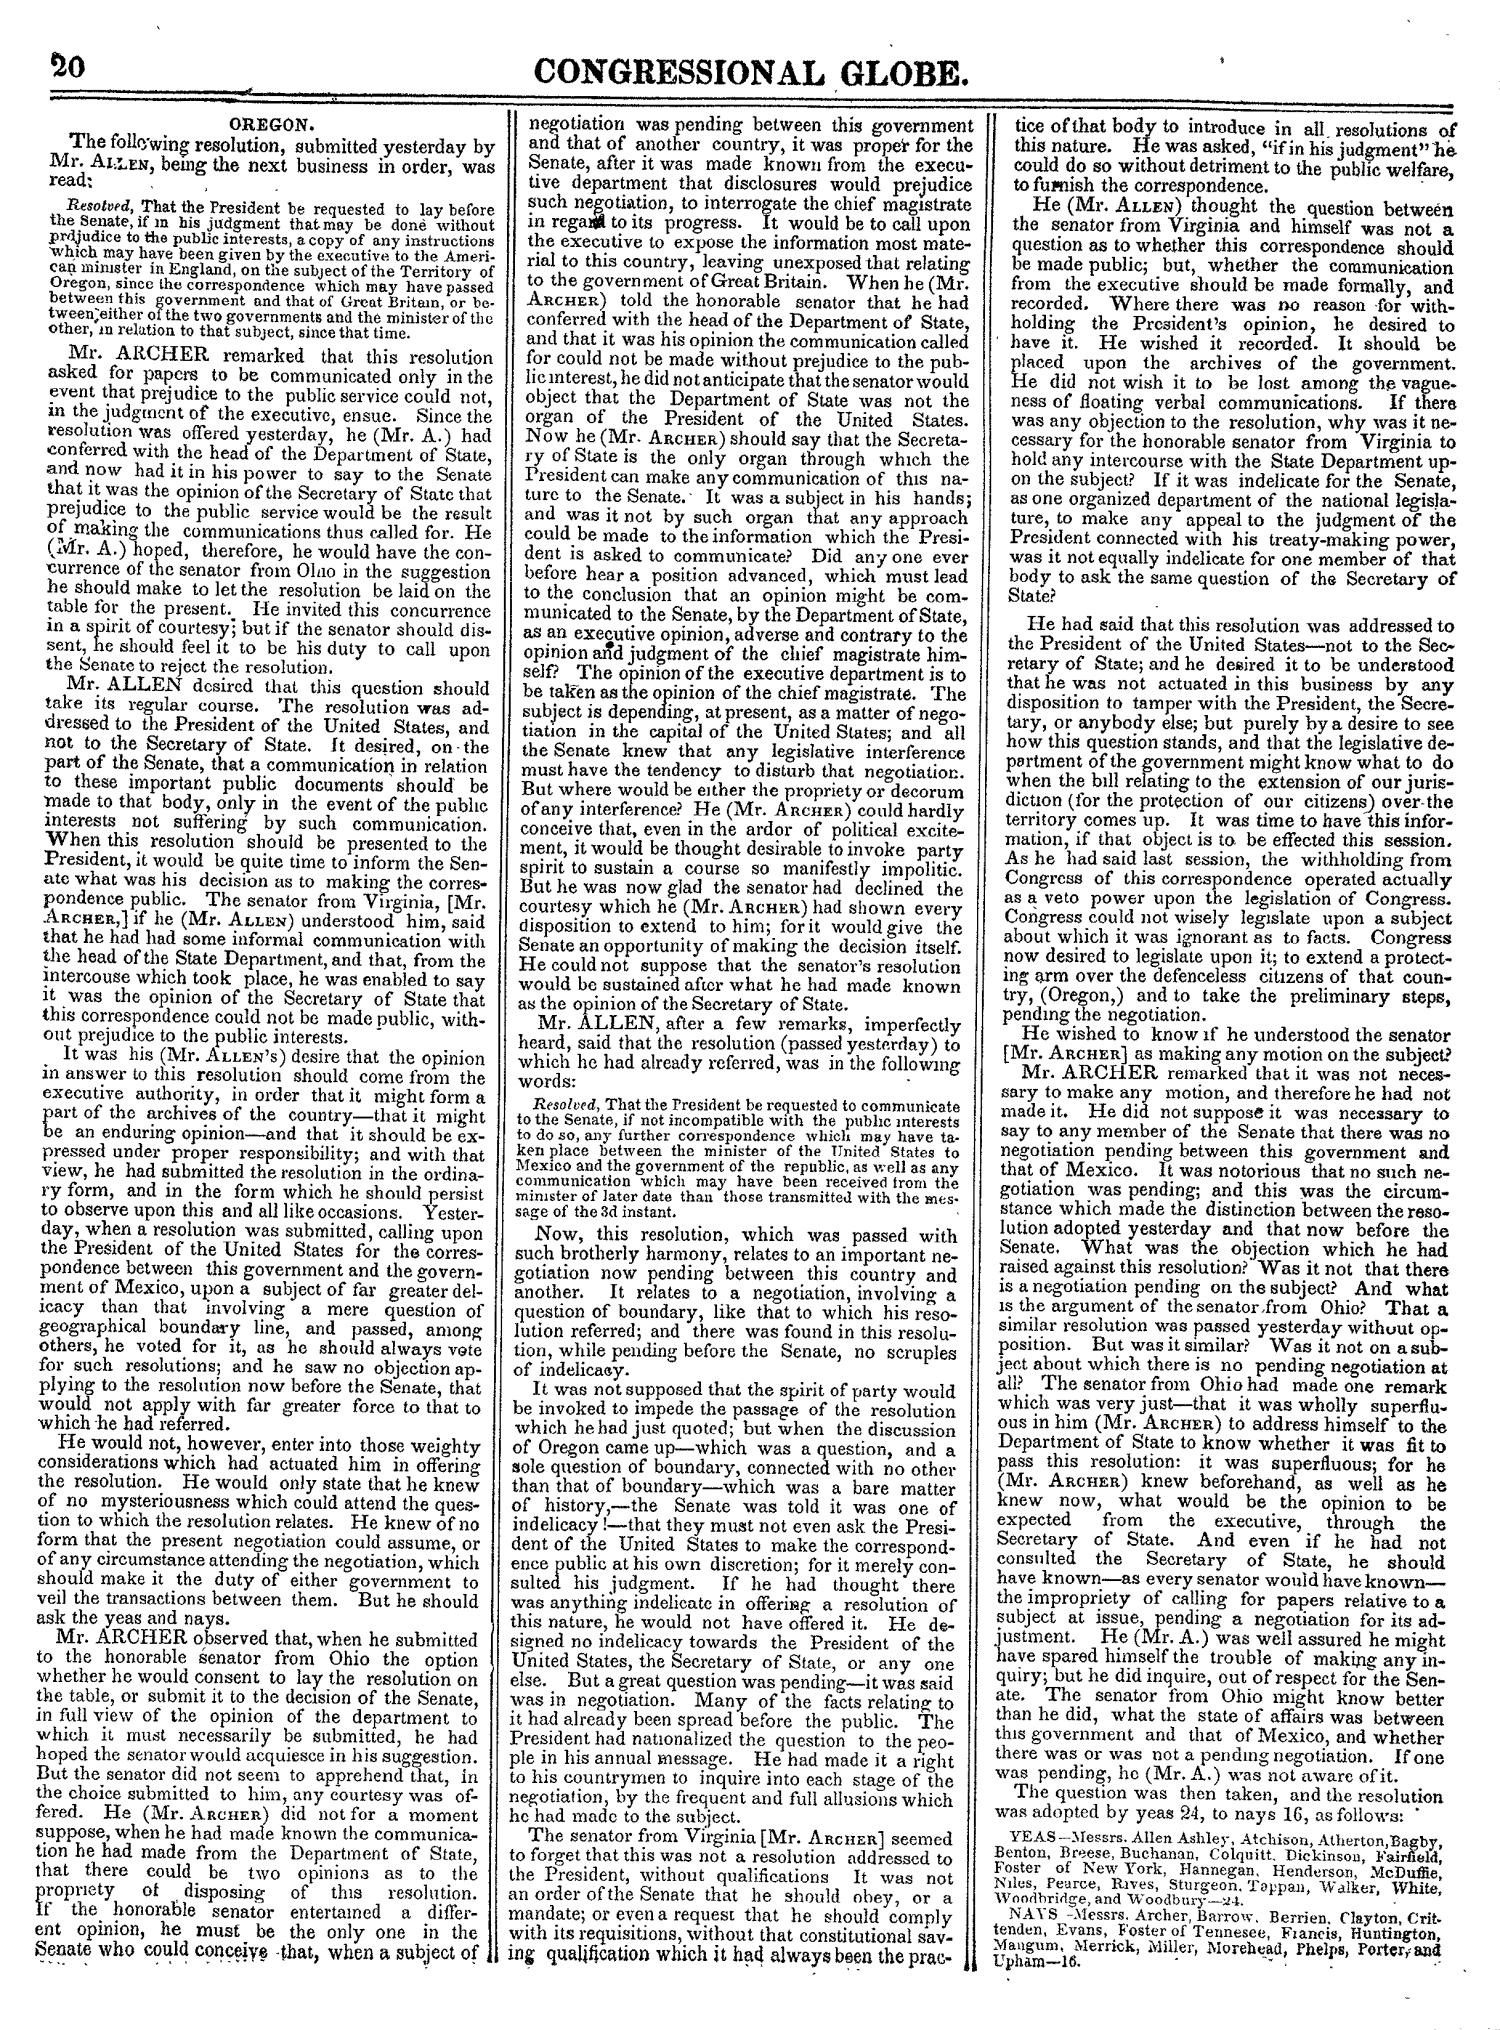 The Congressional Globe, Volume 14: Twenty-Eighth Congress, Second Session                                                                                                      20